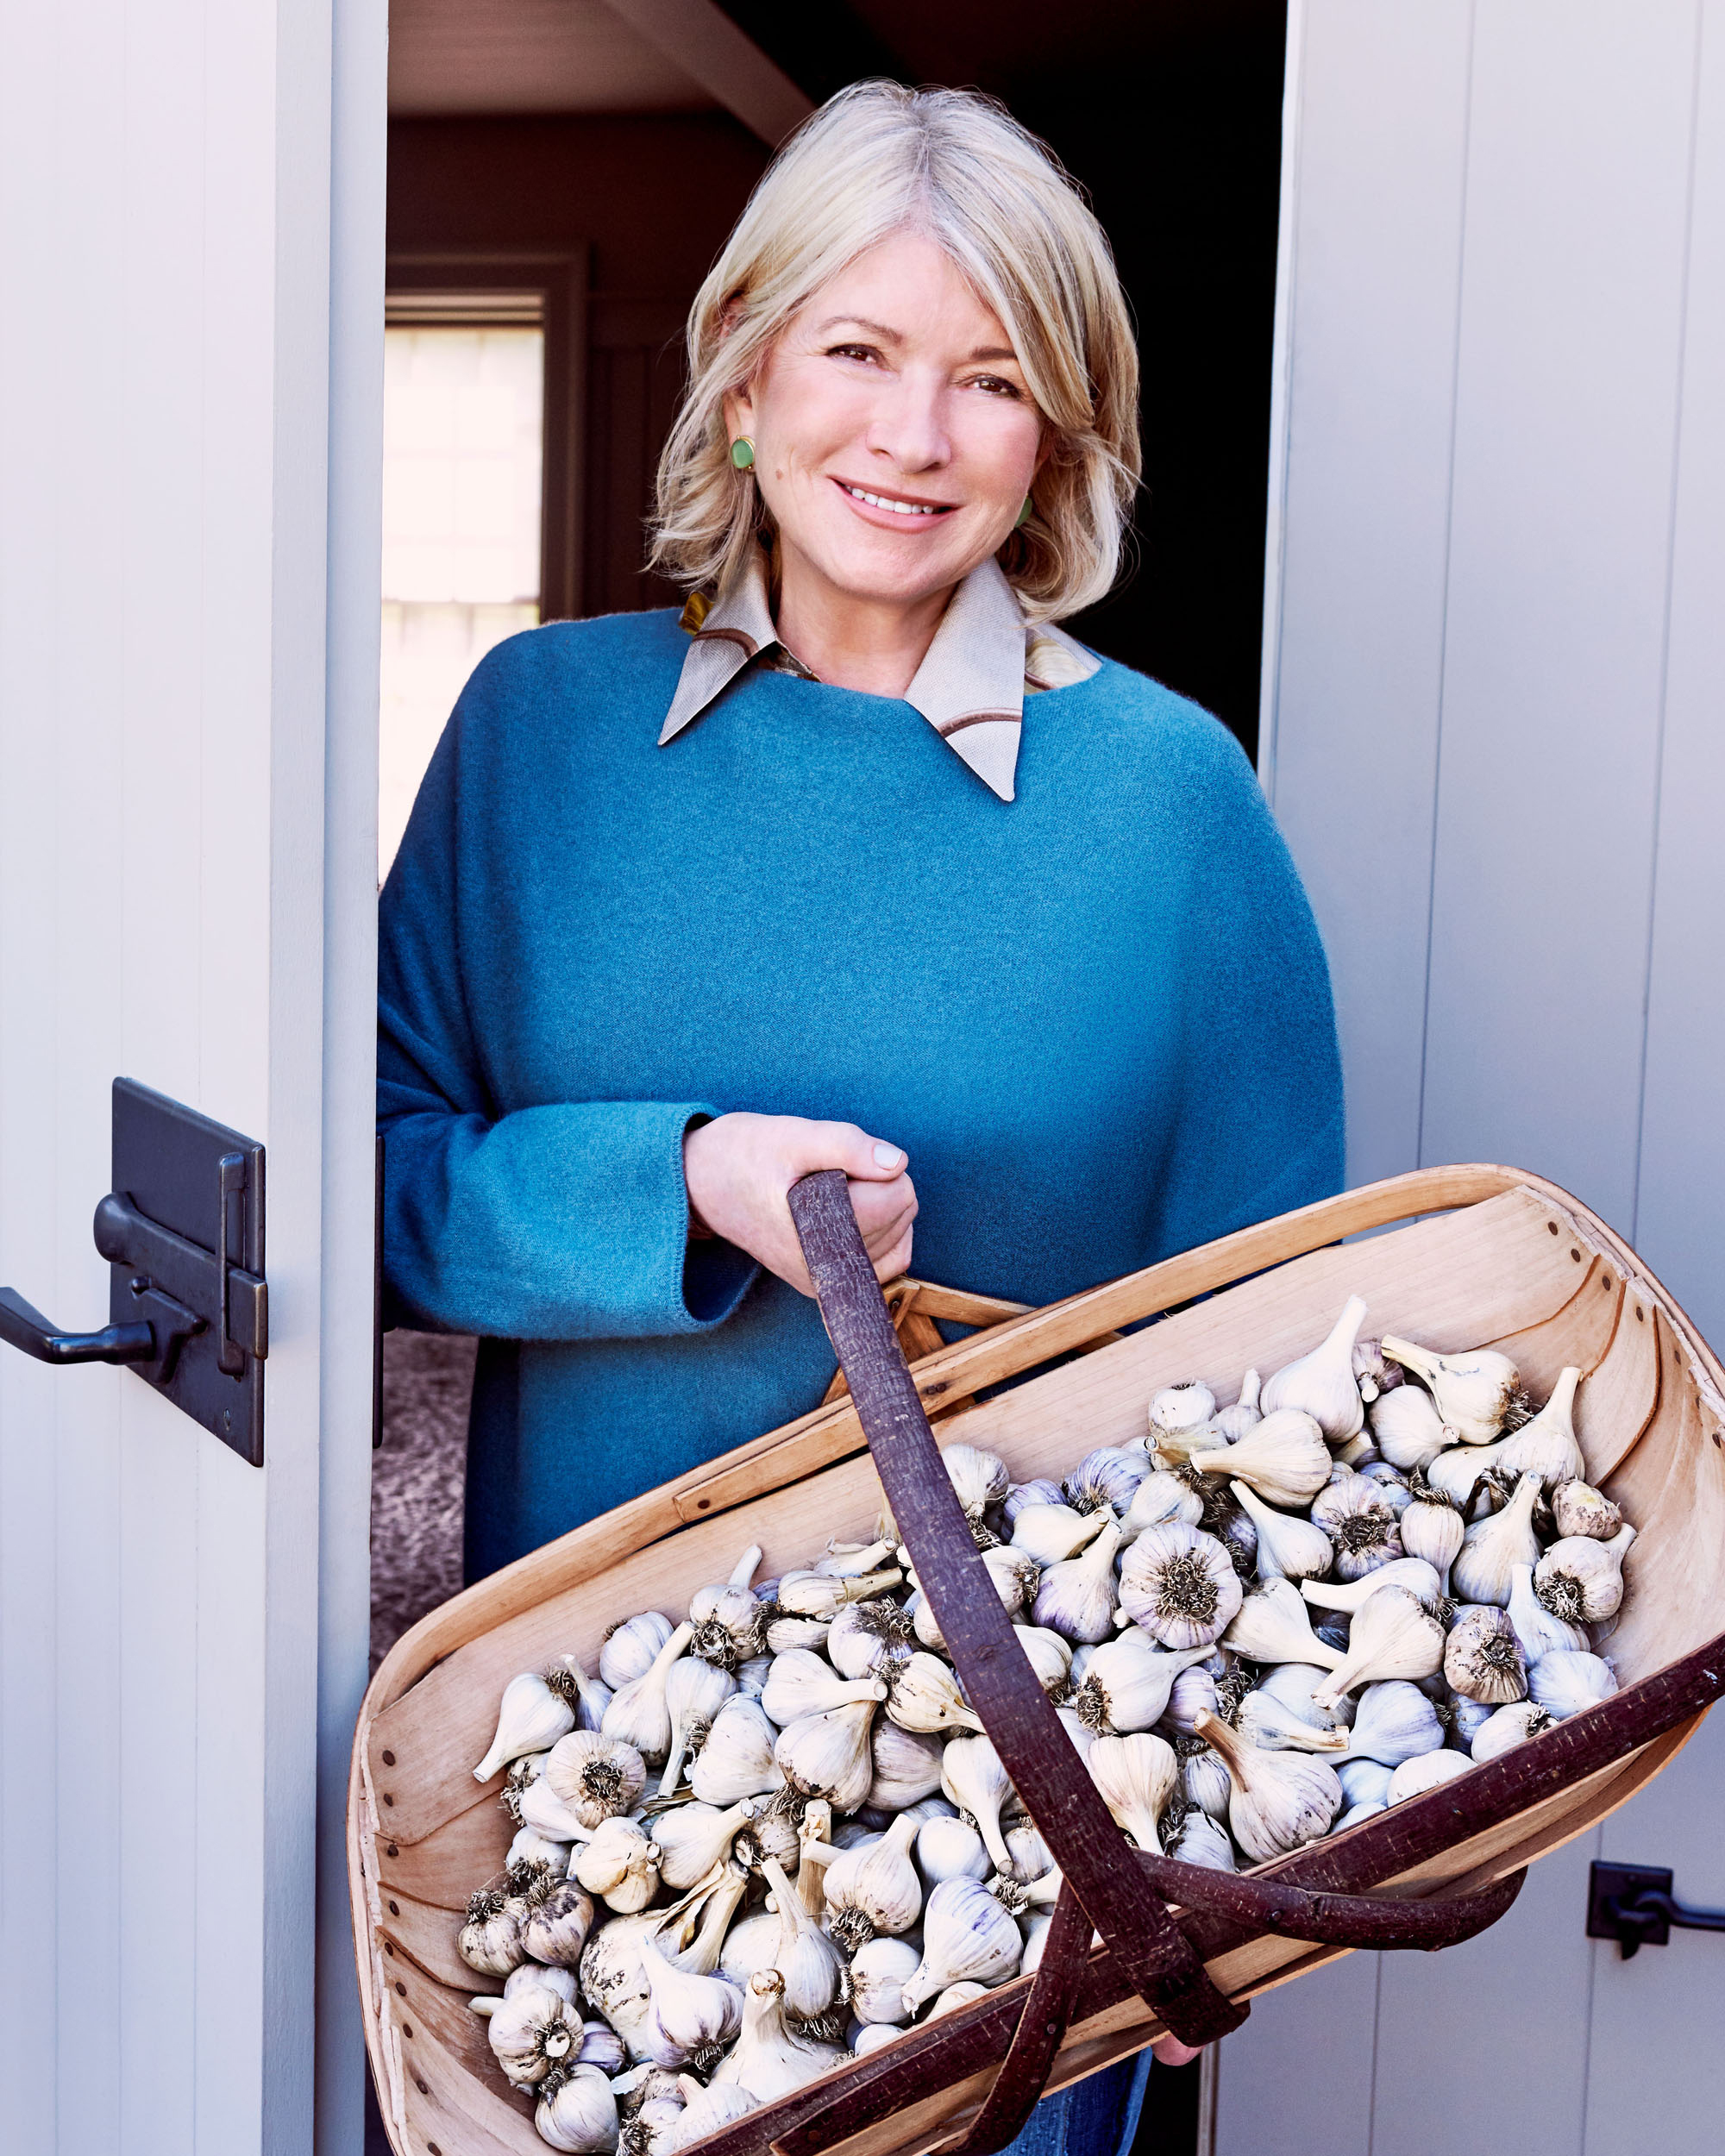 Check Out Martha's Garlic Harvest—and Cook Her Favorite Recipes!